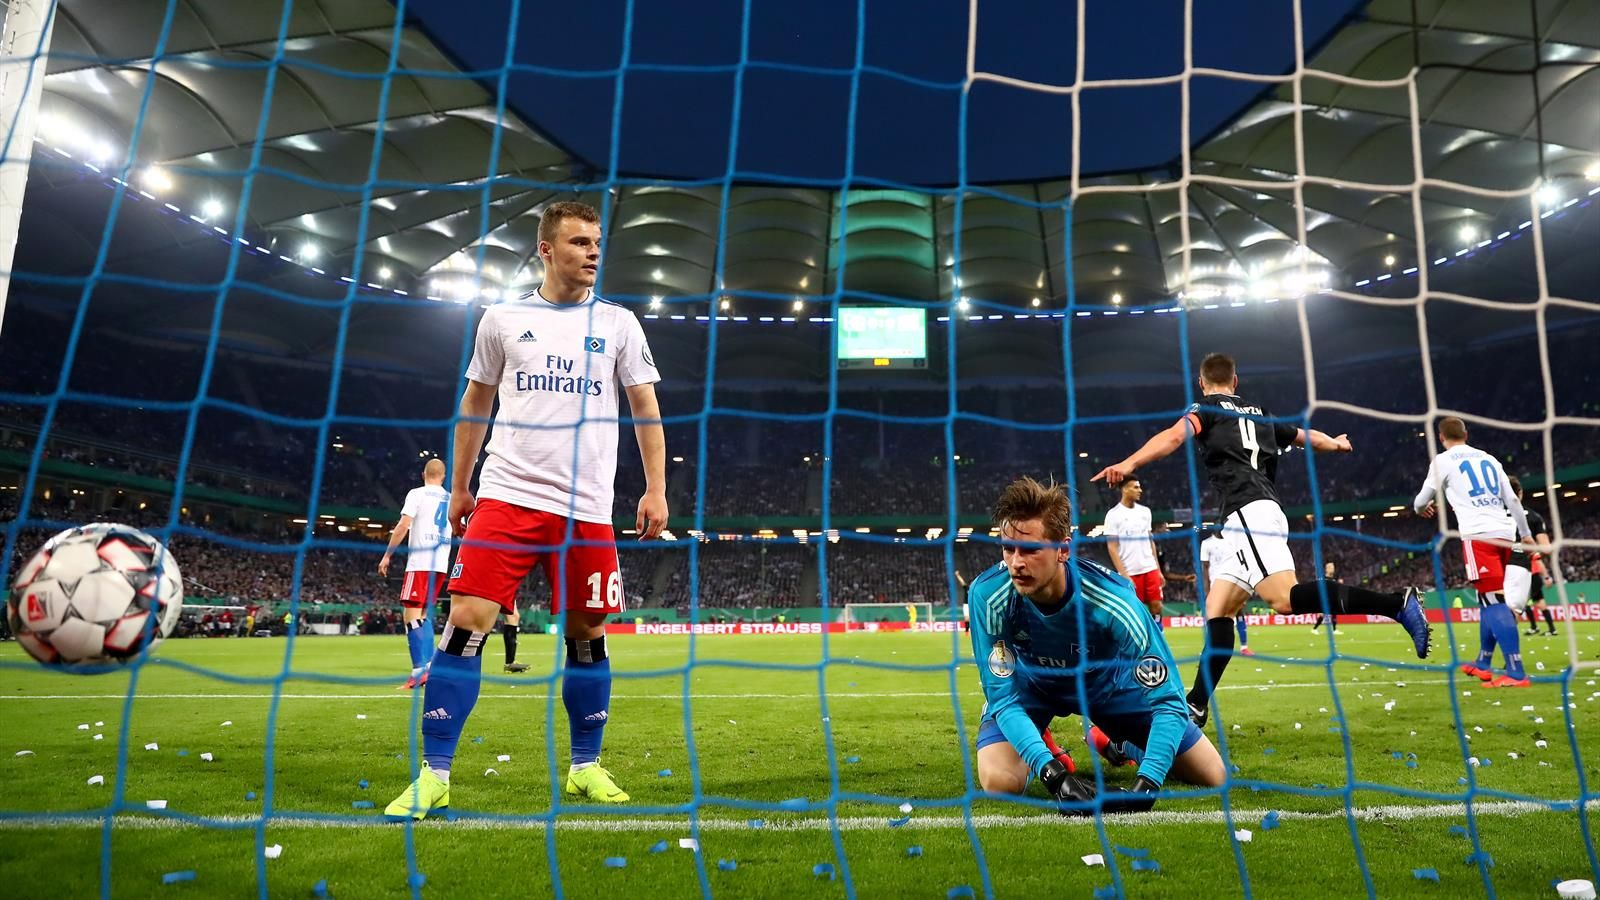 Rb Leipzig Eliminate Hamburg To Reach First German Rb Leipzig Hsv 1649539 Hd Wallpaper Backgrounds Download